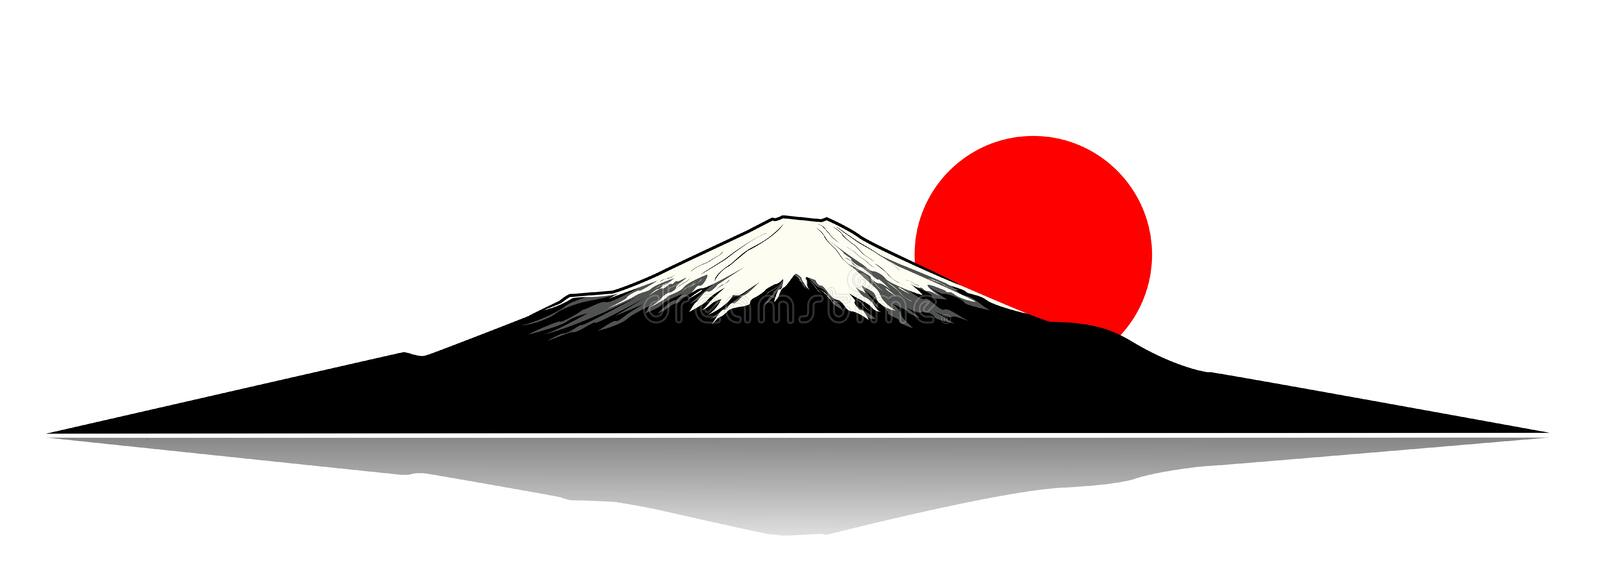 Mount Fuji. And the red sun silhouette vector illustration